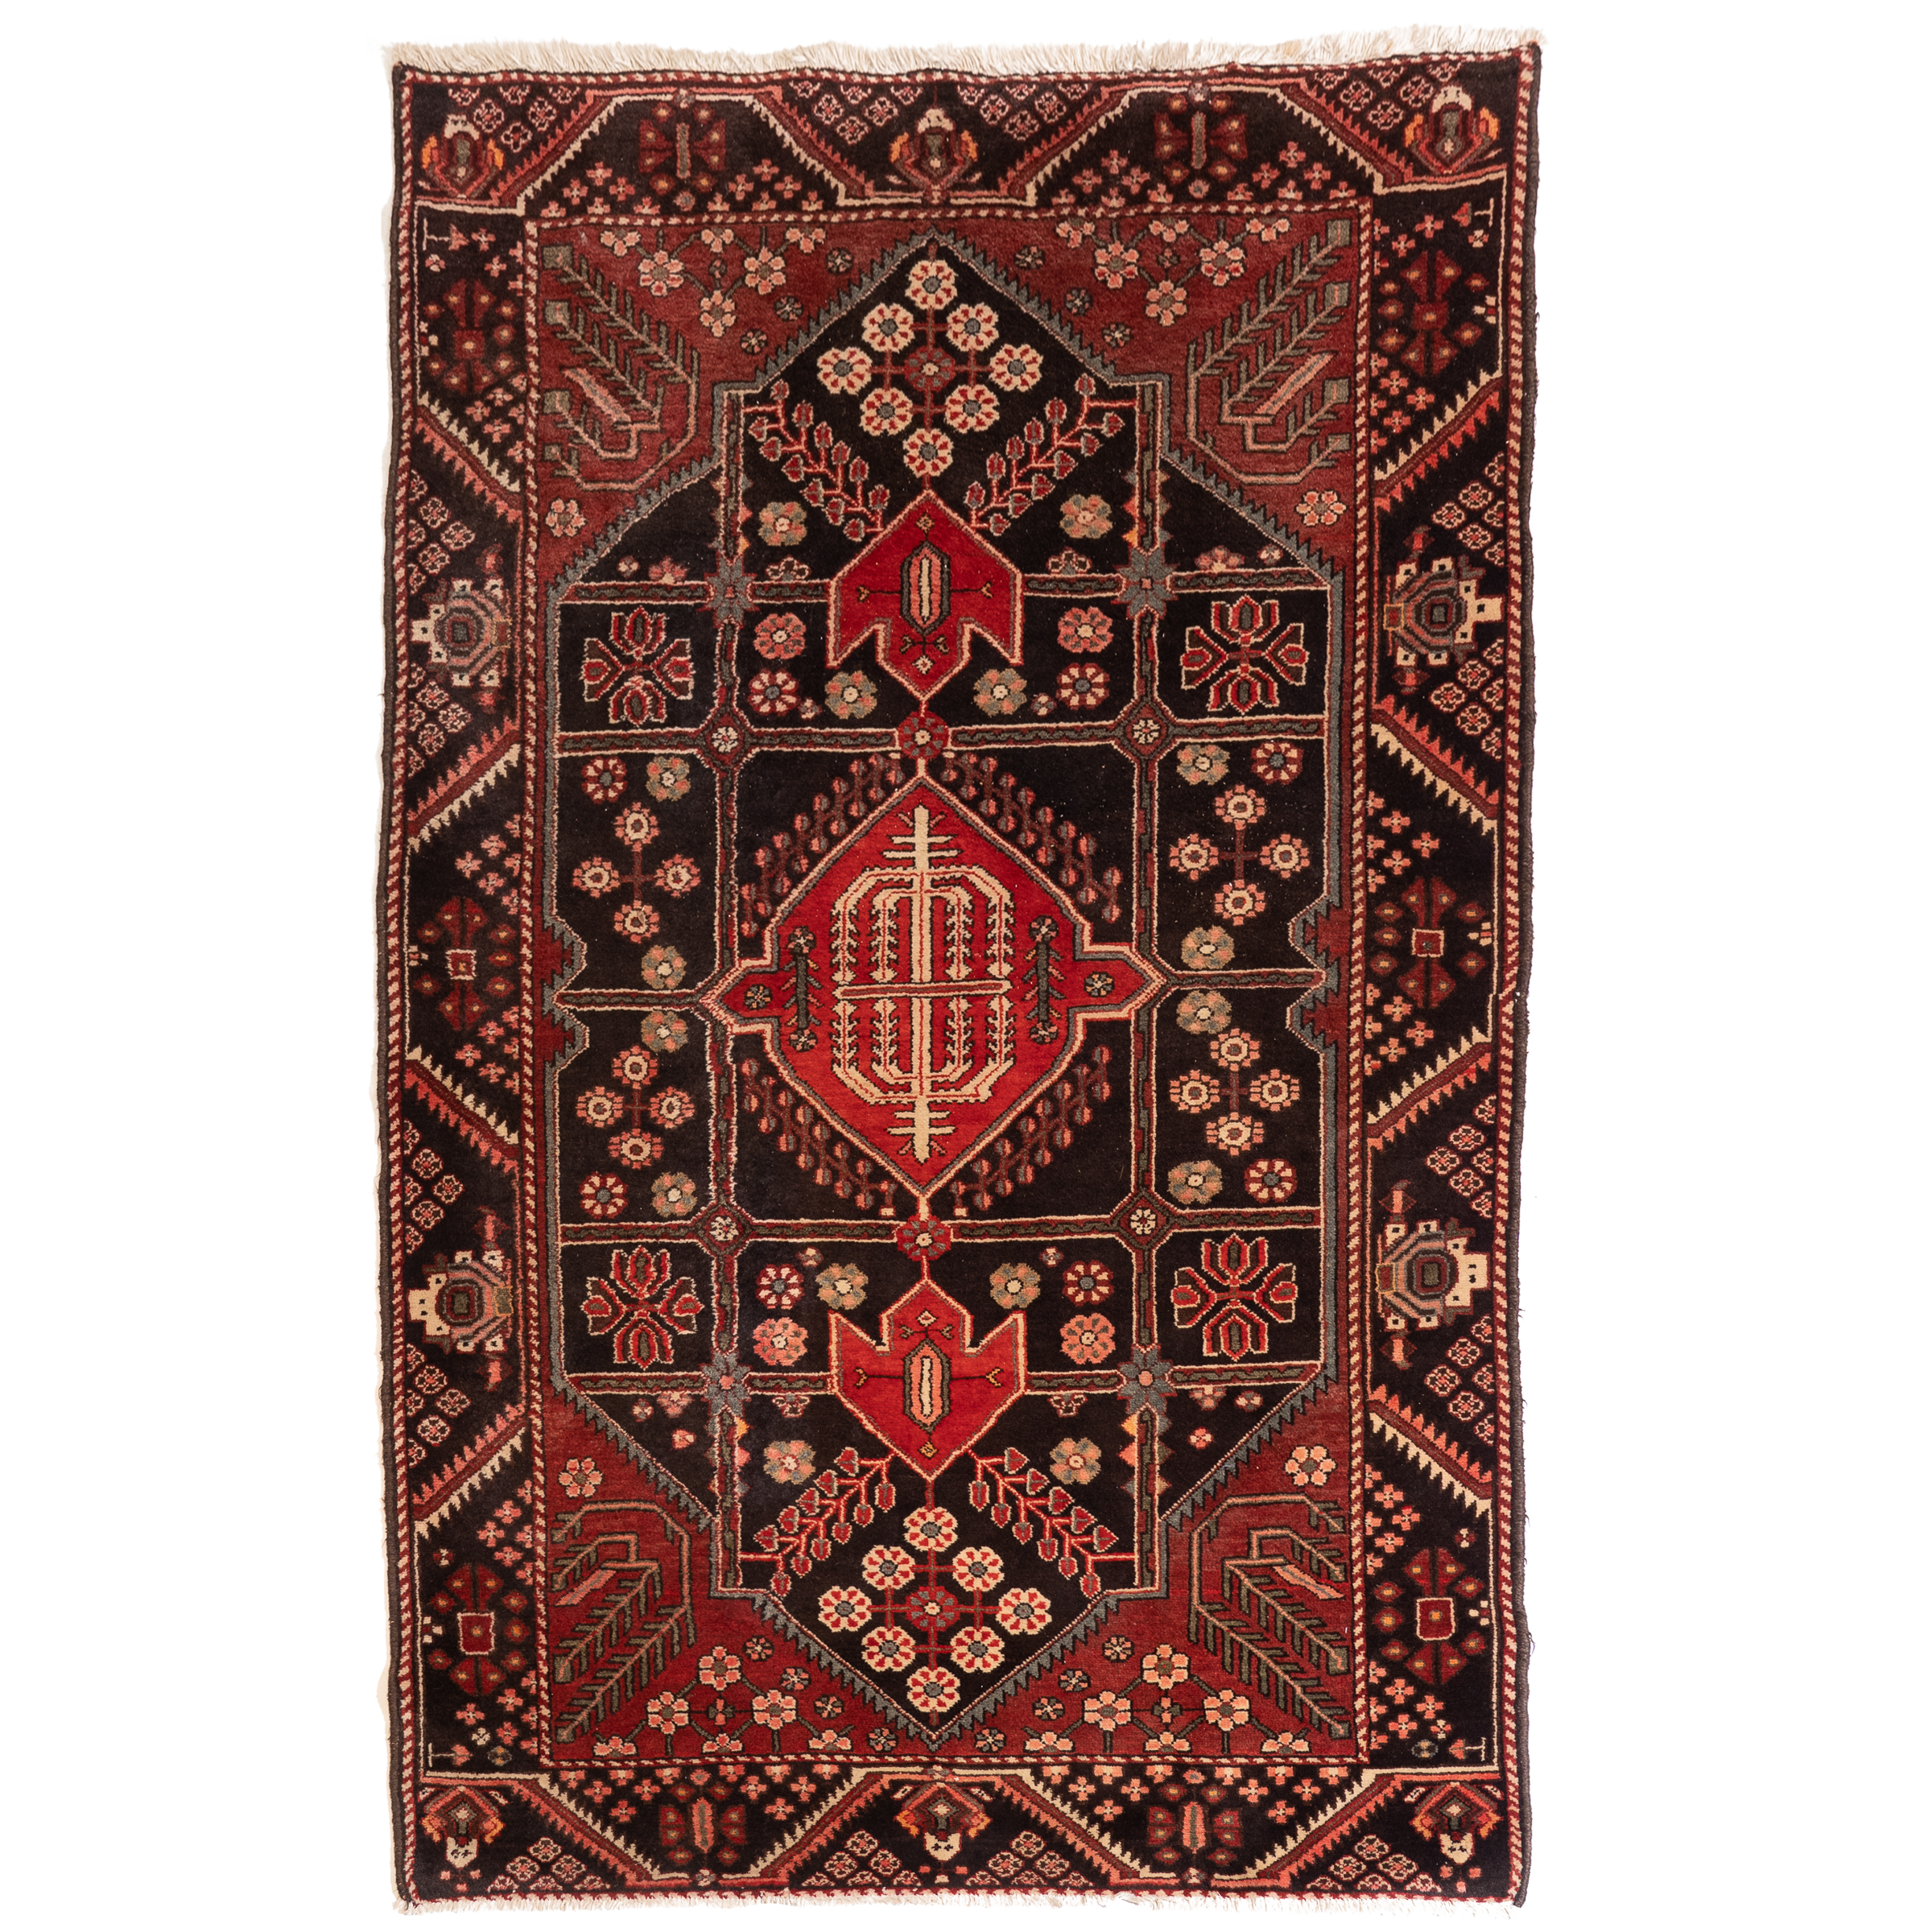 South Persian Rug, late 20th century